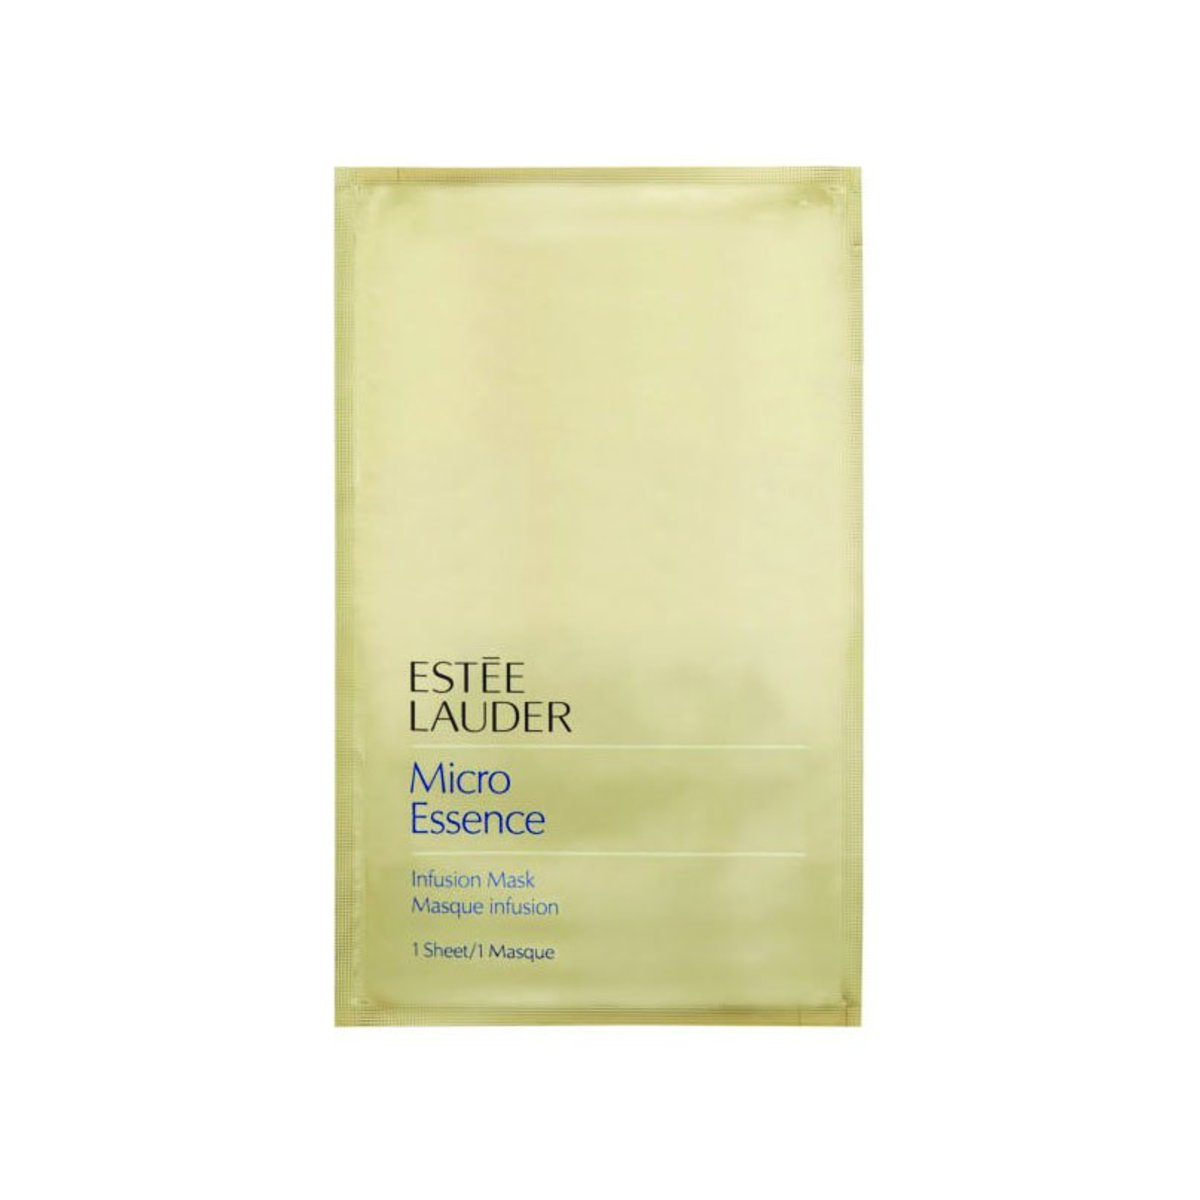 Micro Essence Infusion Mask 3 Sheets [Parallel import] EXP 2021